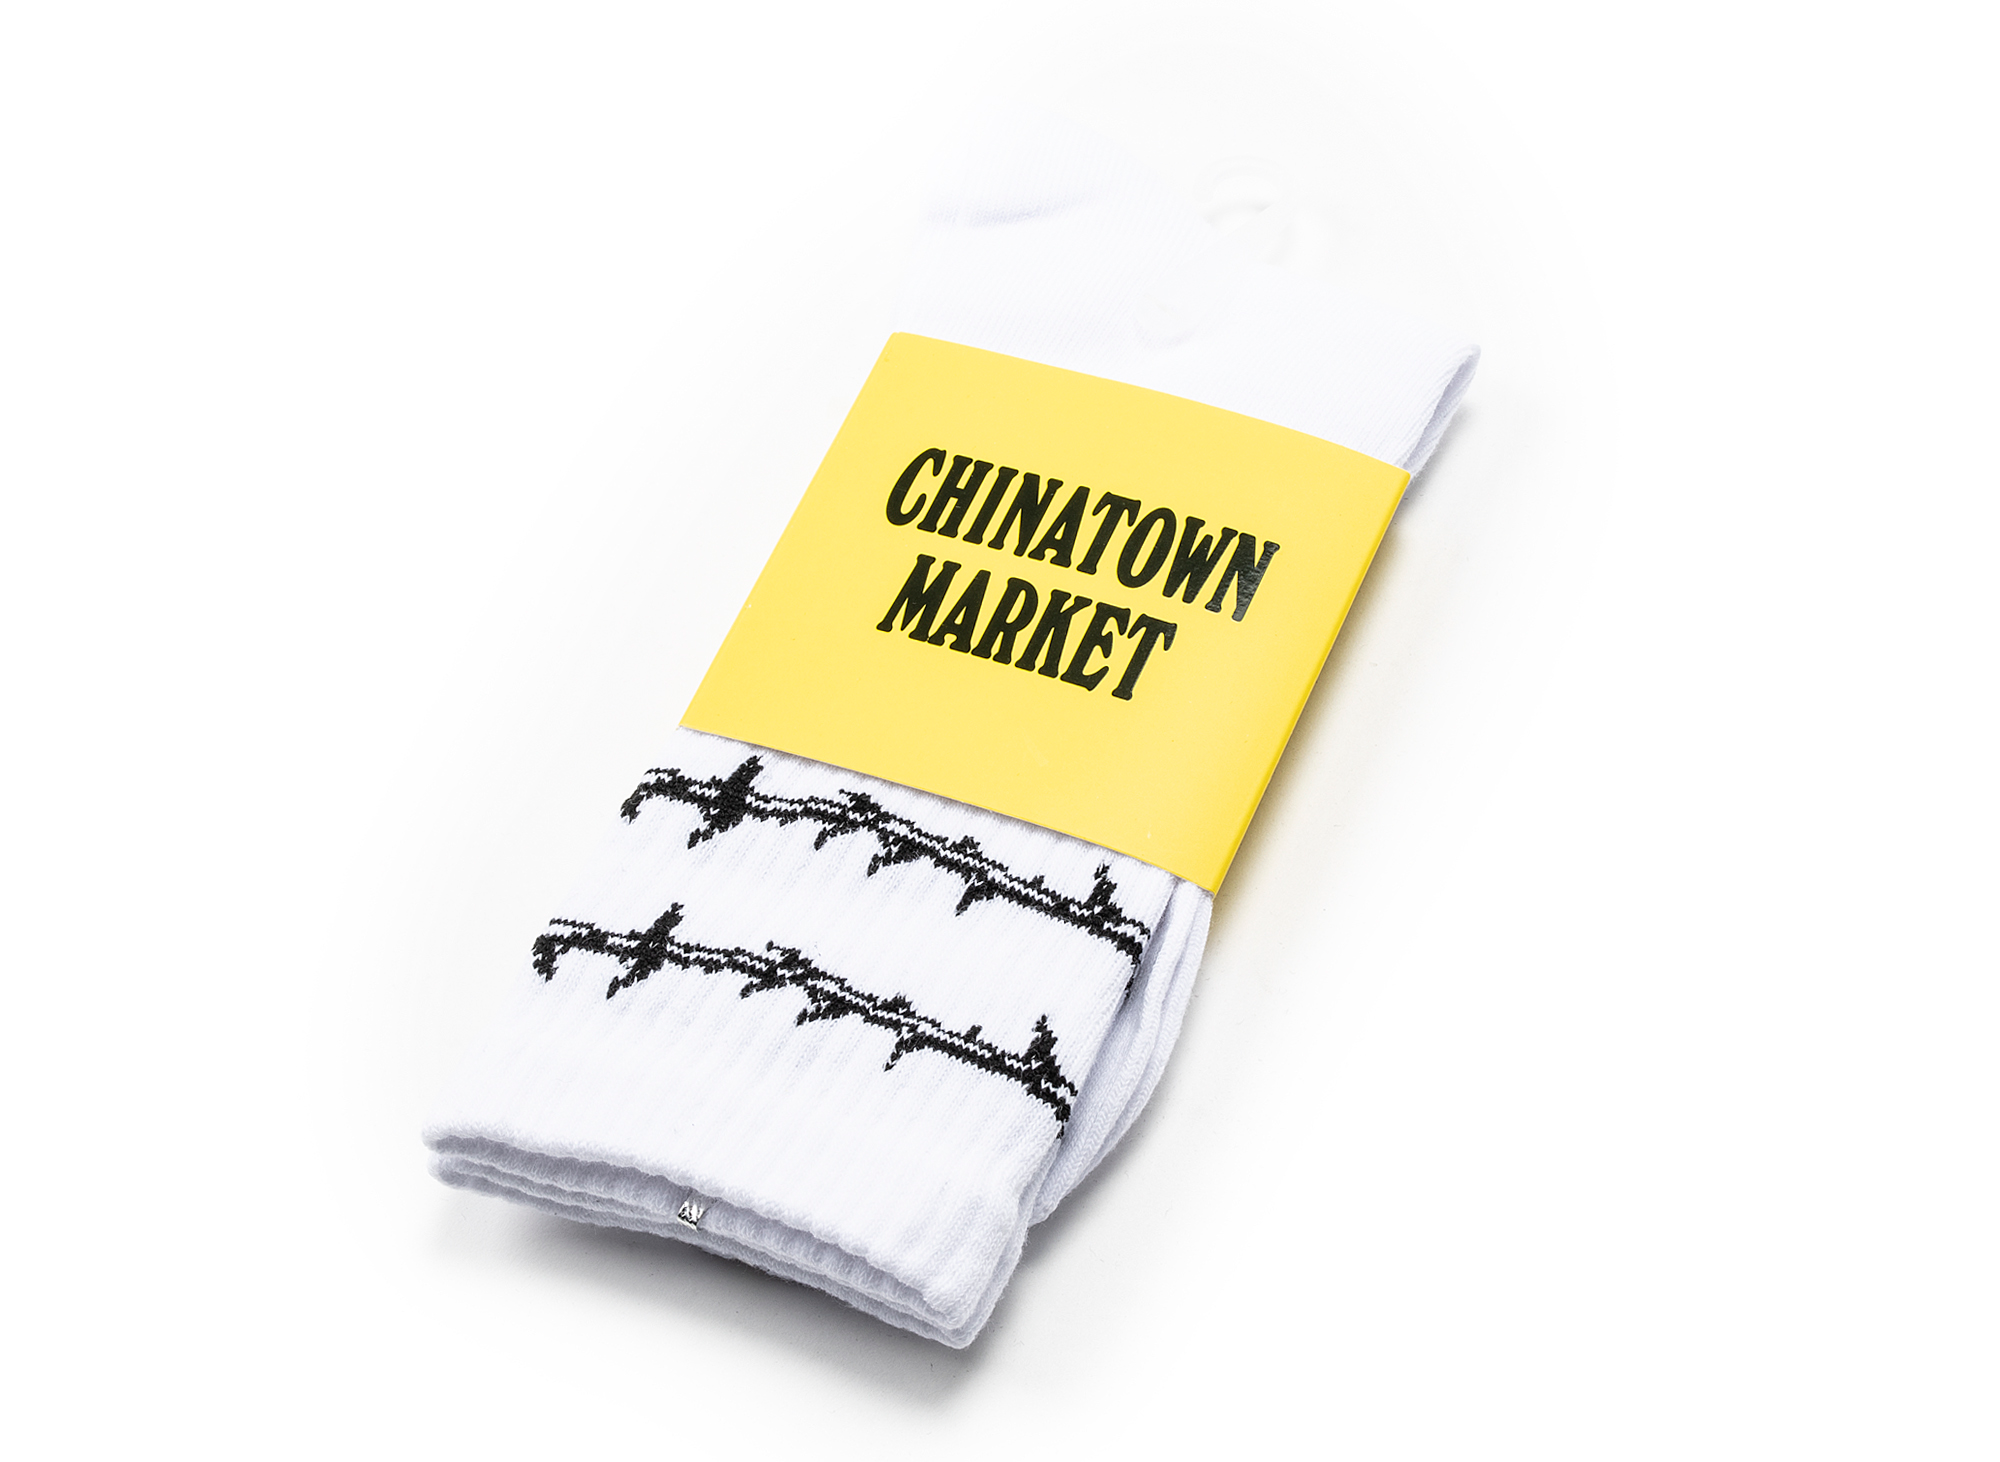 Chinatown Market Thorn Socks in White